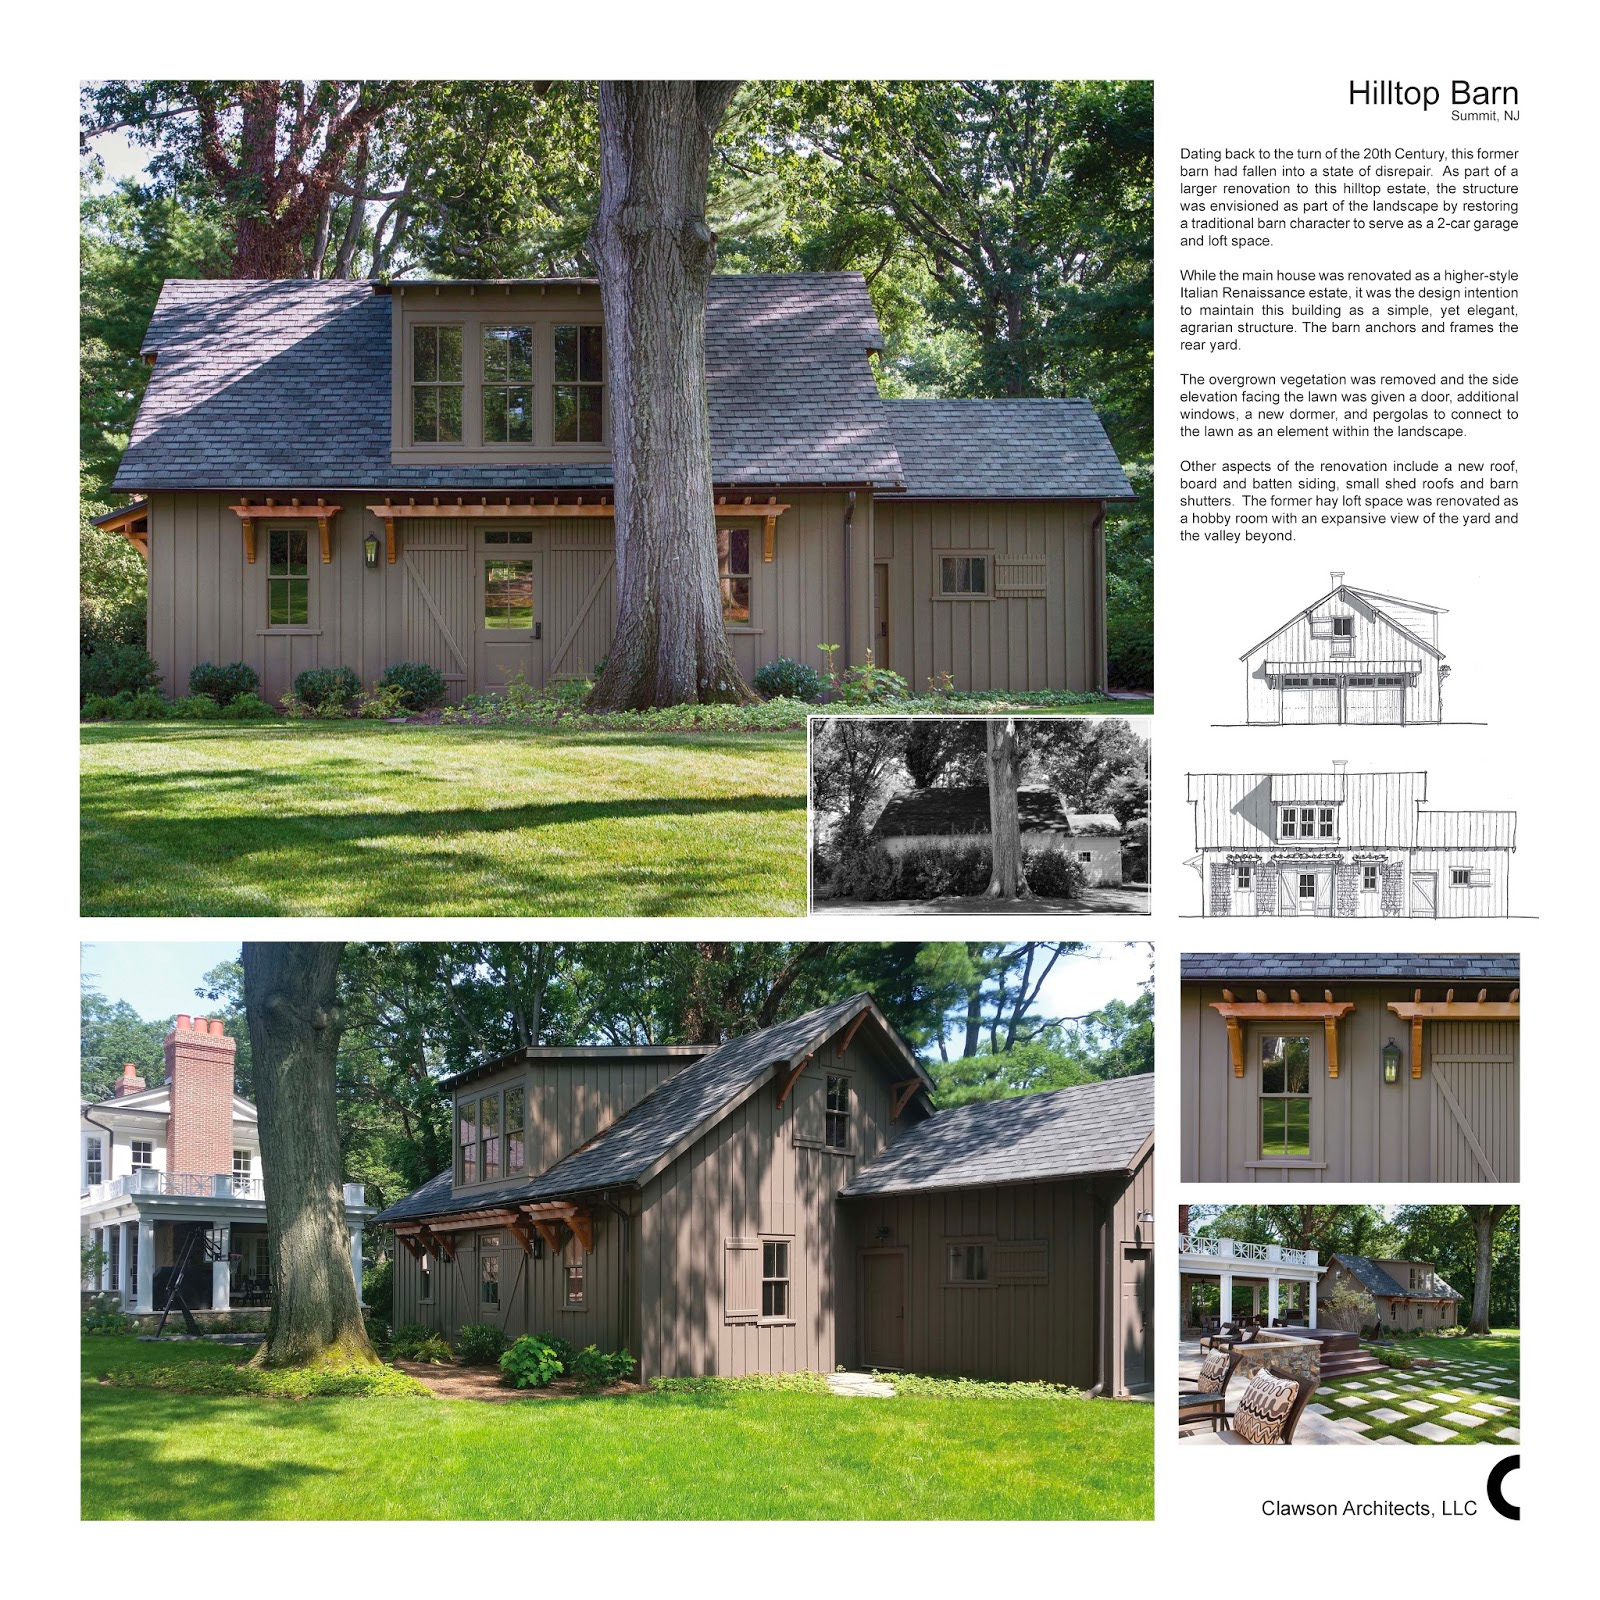 """The AIA chapters presented the Gold medal award for the Clawson firm's design of the """"Hill Top Barn in Summit, NJ"""" The jury noted that Clawson Architects, """"consistently turns out beautiful work."""""""